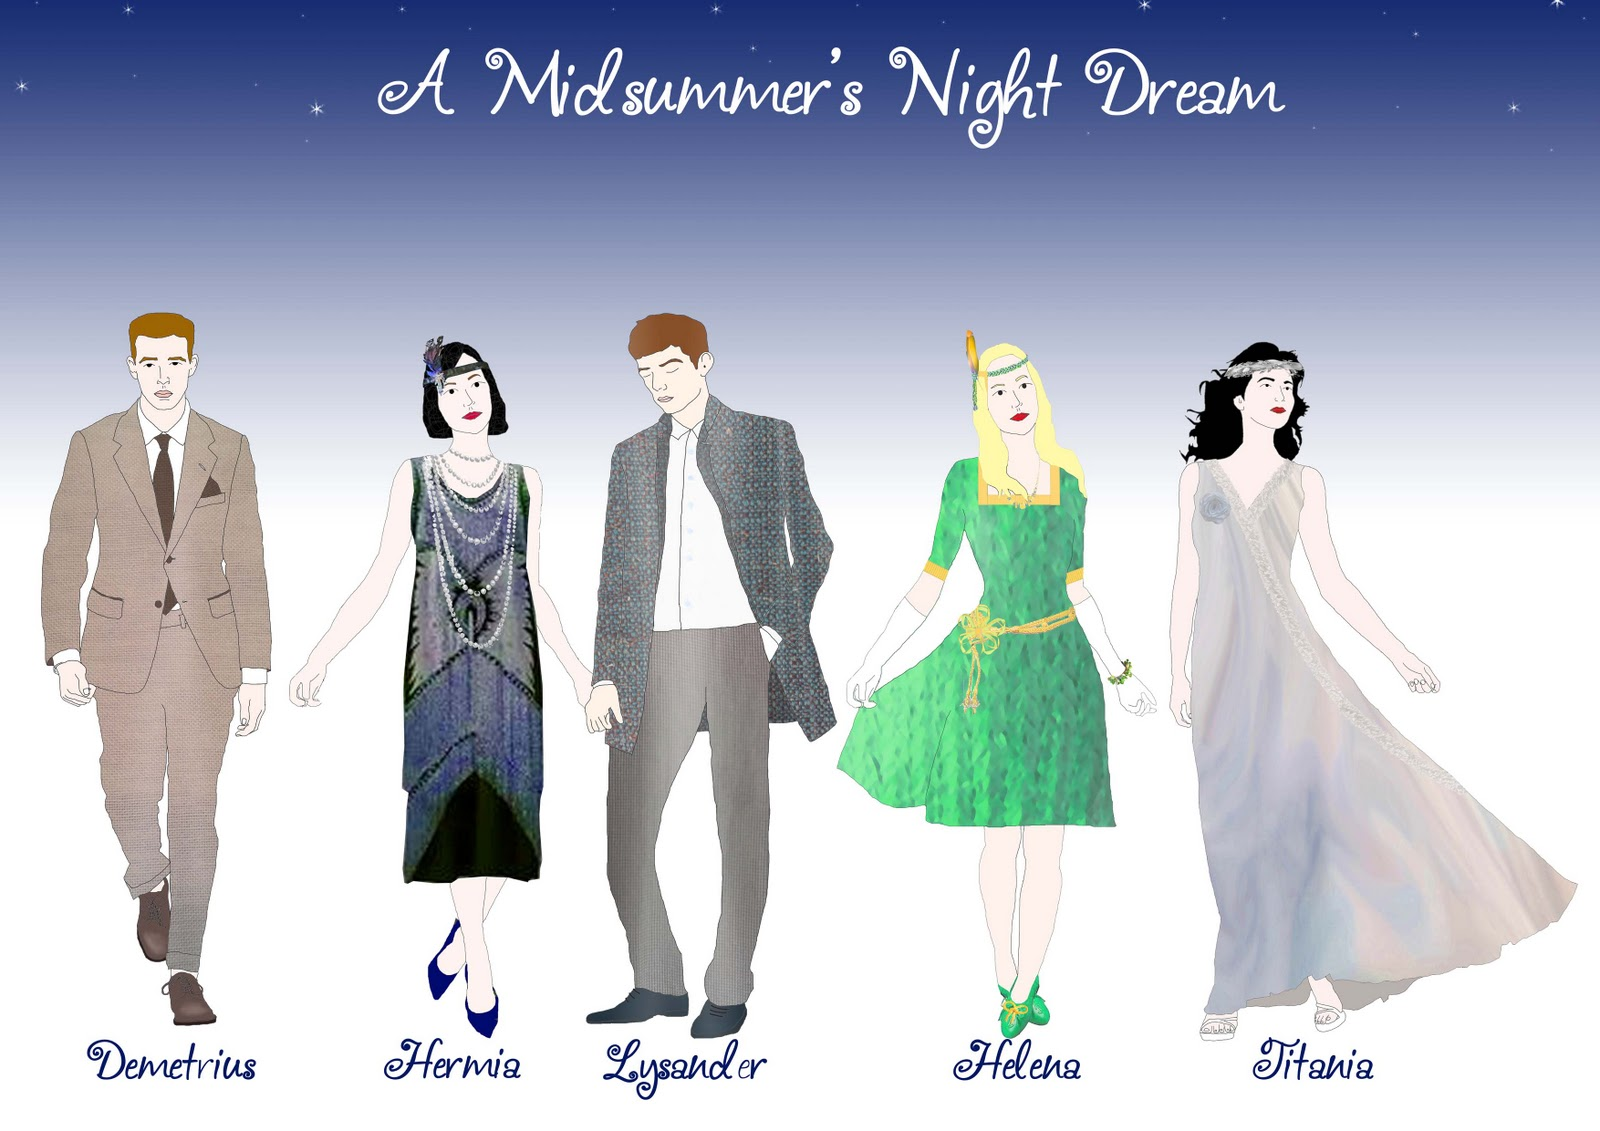 midsummers night dream Shakespeare: a midsummer night's dream (shakespeare's globe)  a midsummer nights dream-act 3 scene 2  a midsummer night's dream presented by rice university department of visual and.